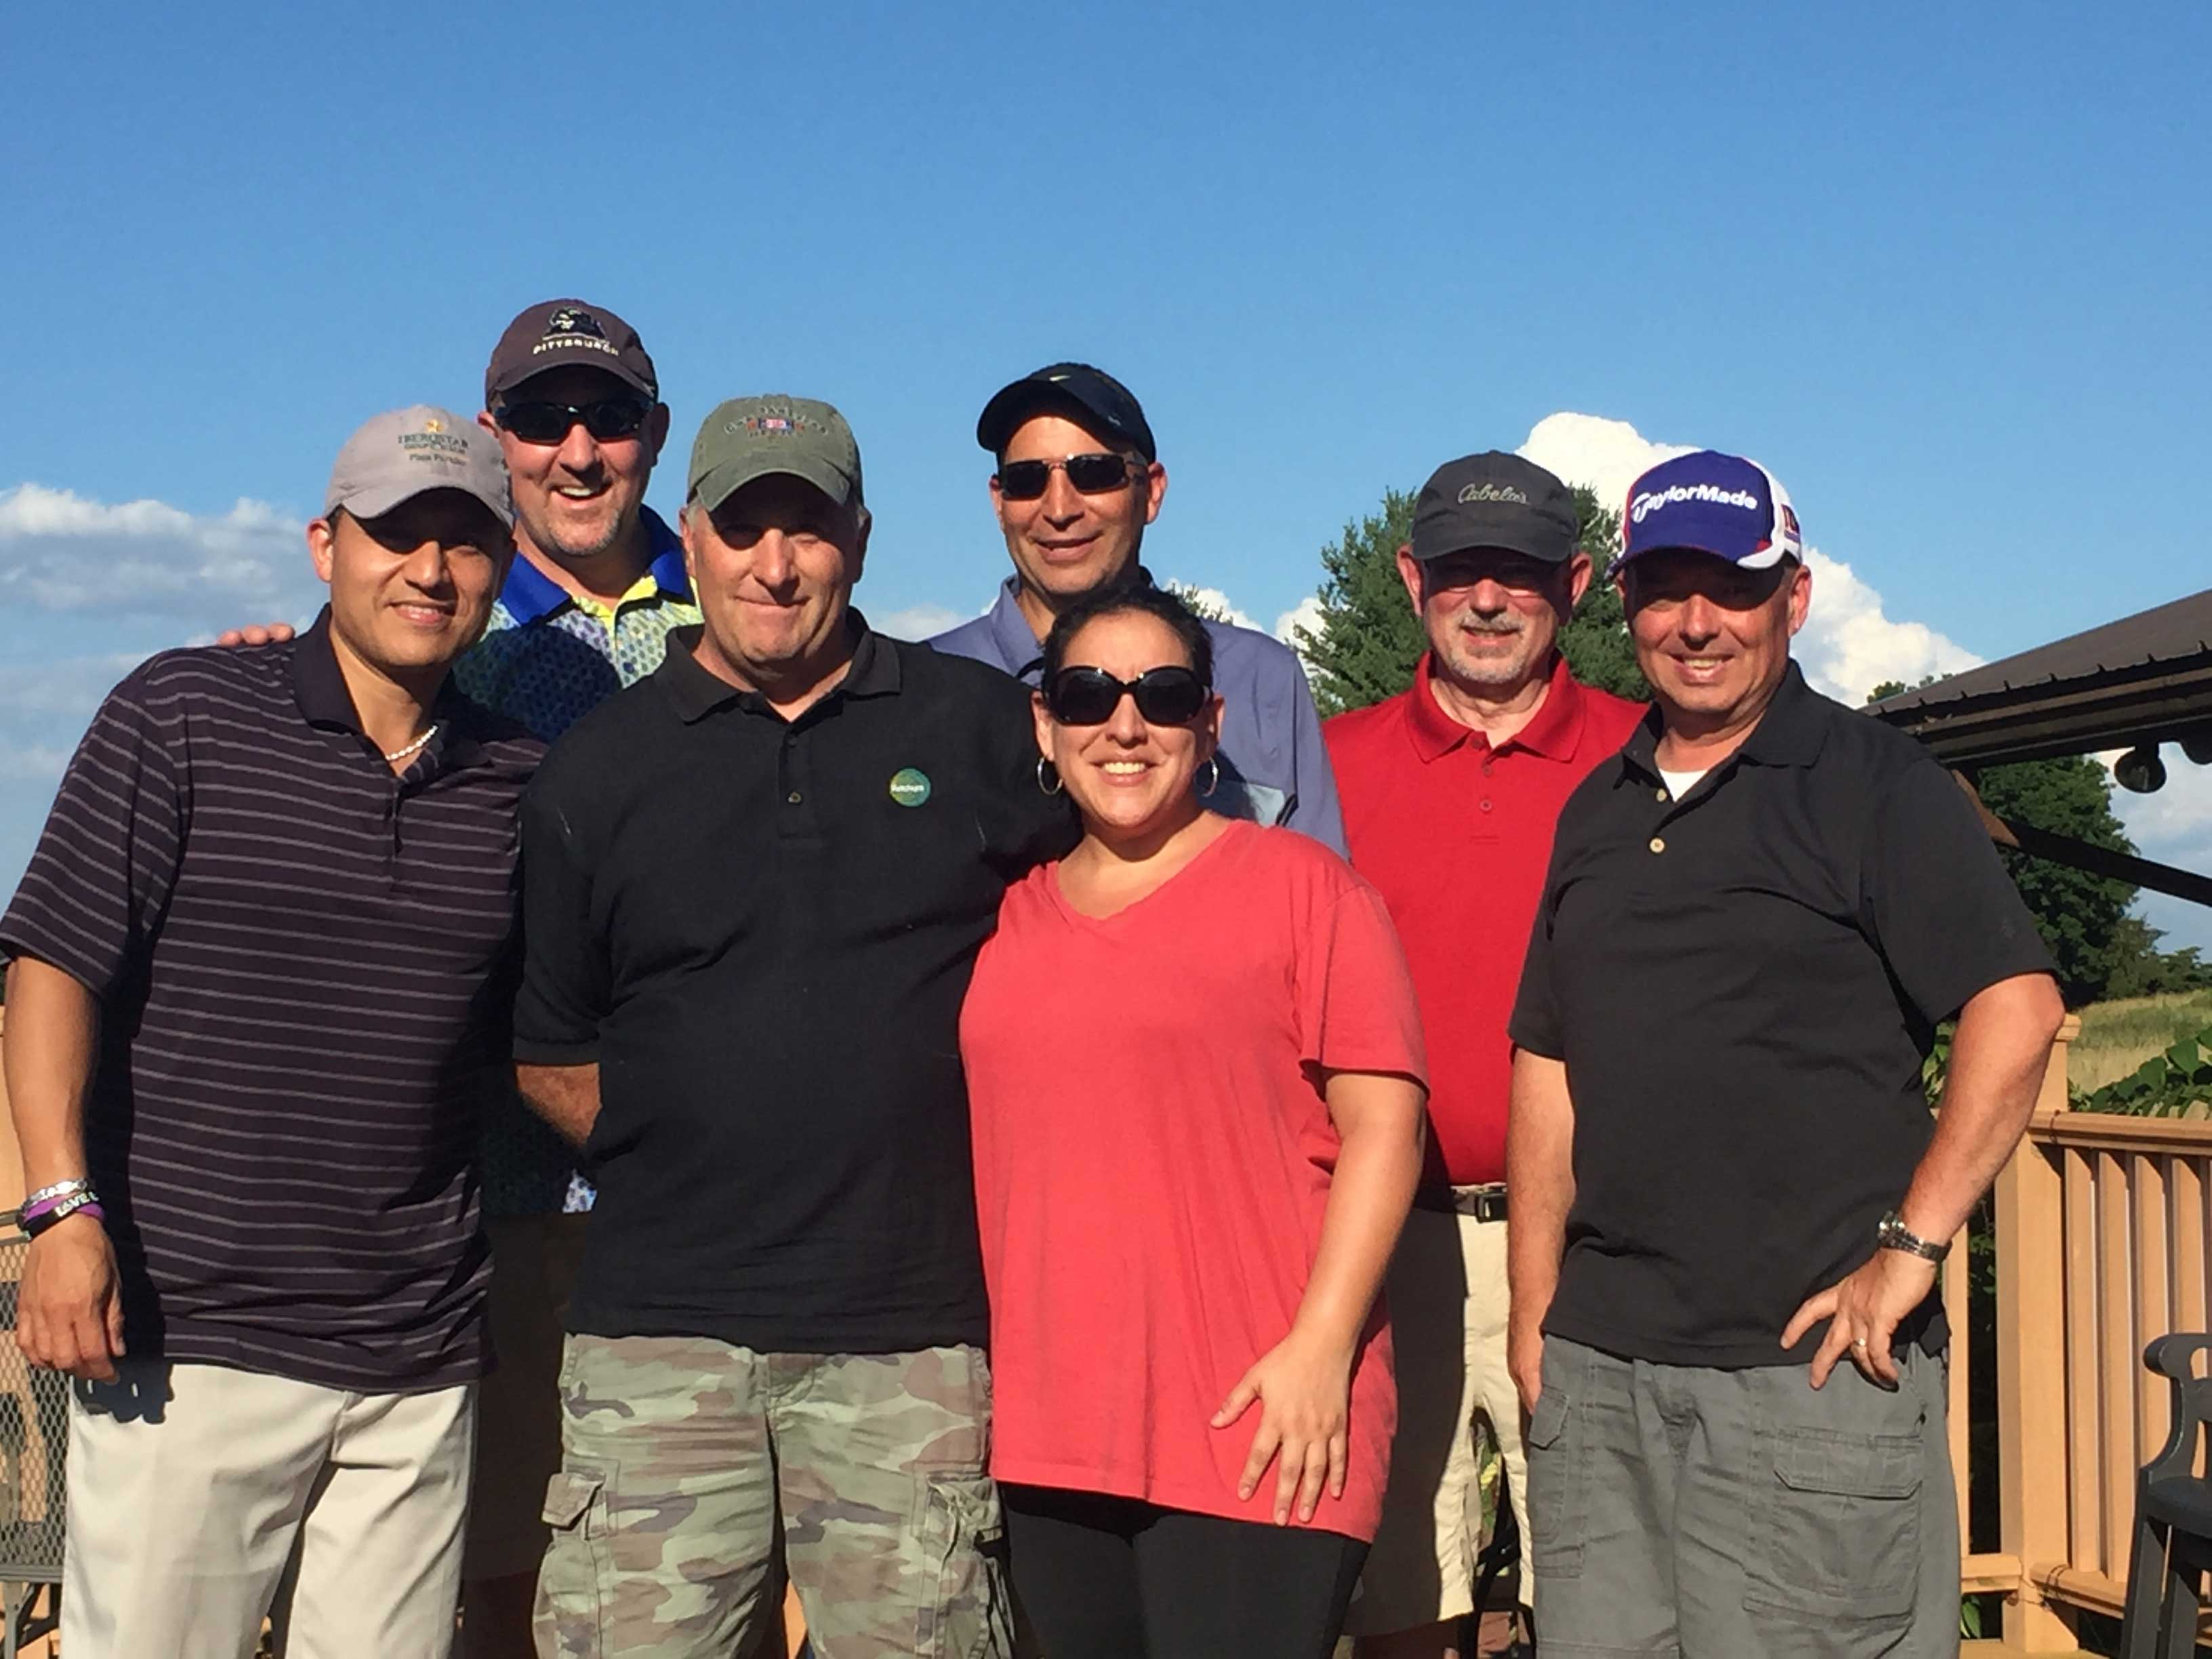 Our amazing IT team had a blast at the Sportsman's Golf Course in Harrisburg, Pennsylvania.